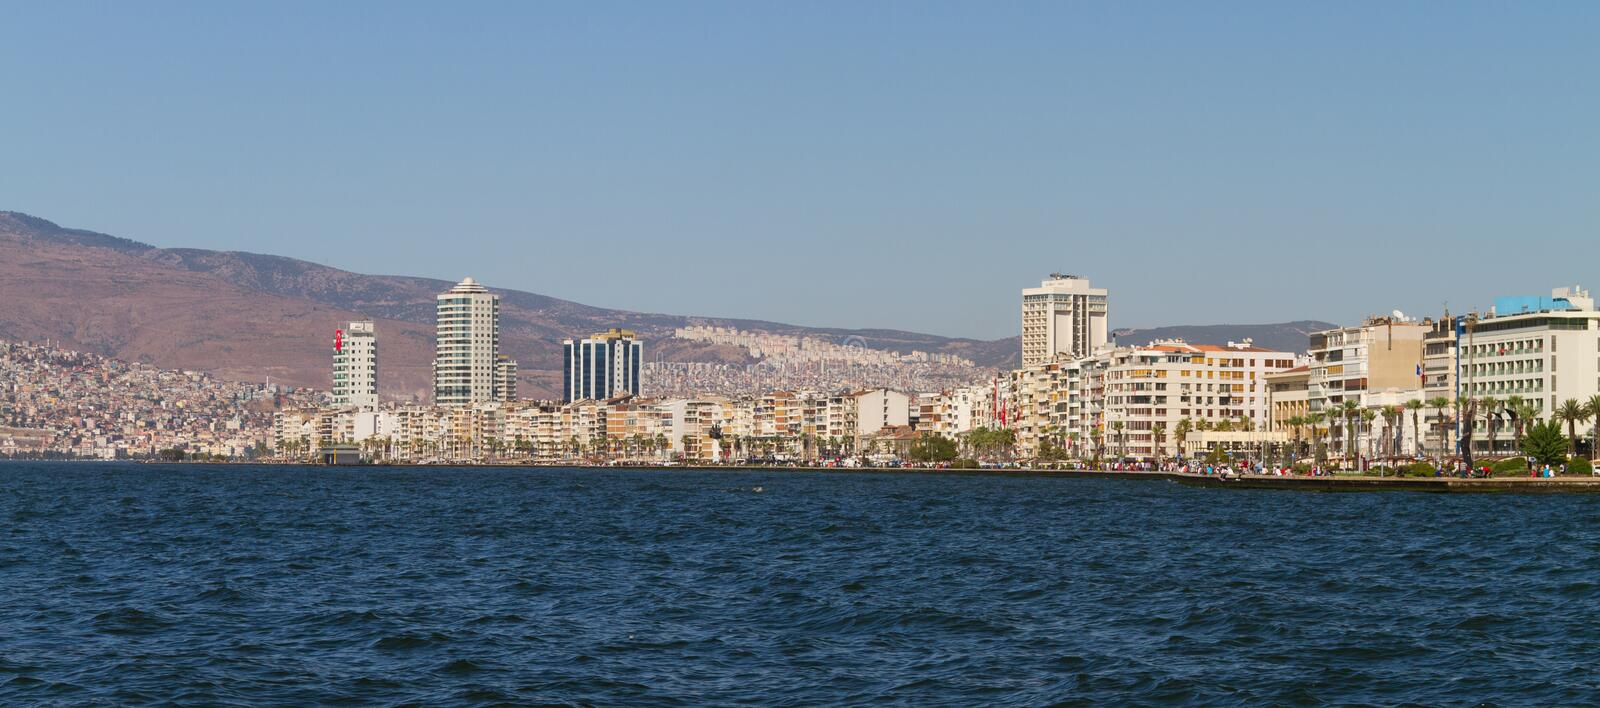 Download Cityscape of Izmir, Turkey stock image. Image of panoramic - 28404025